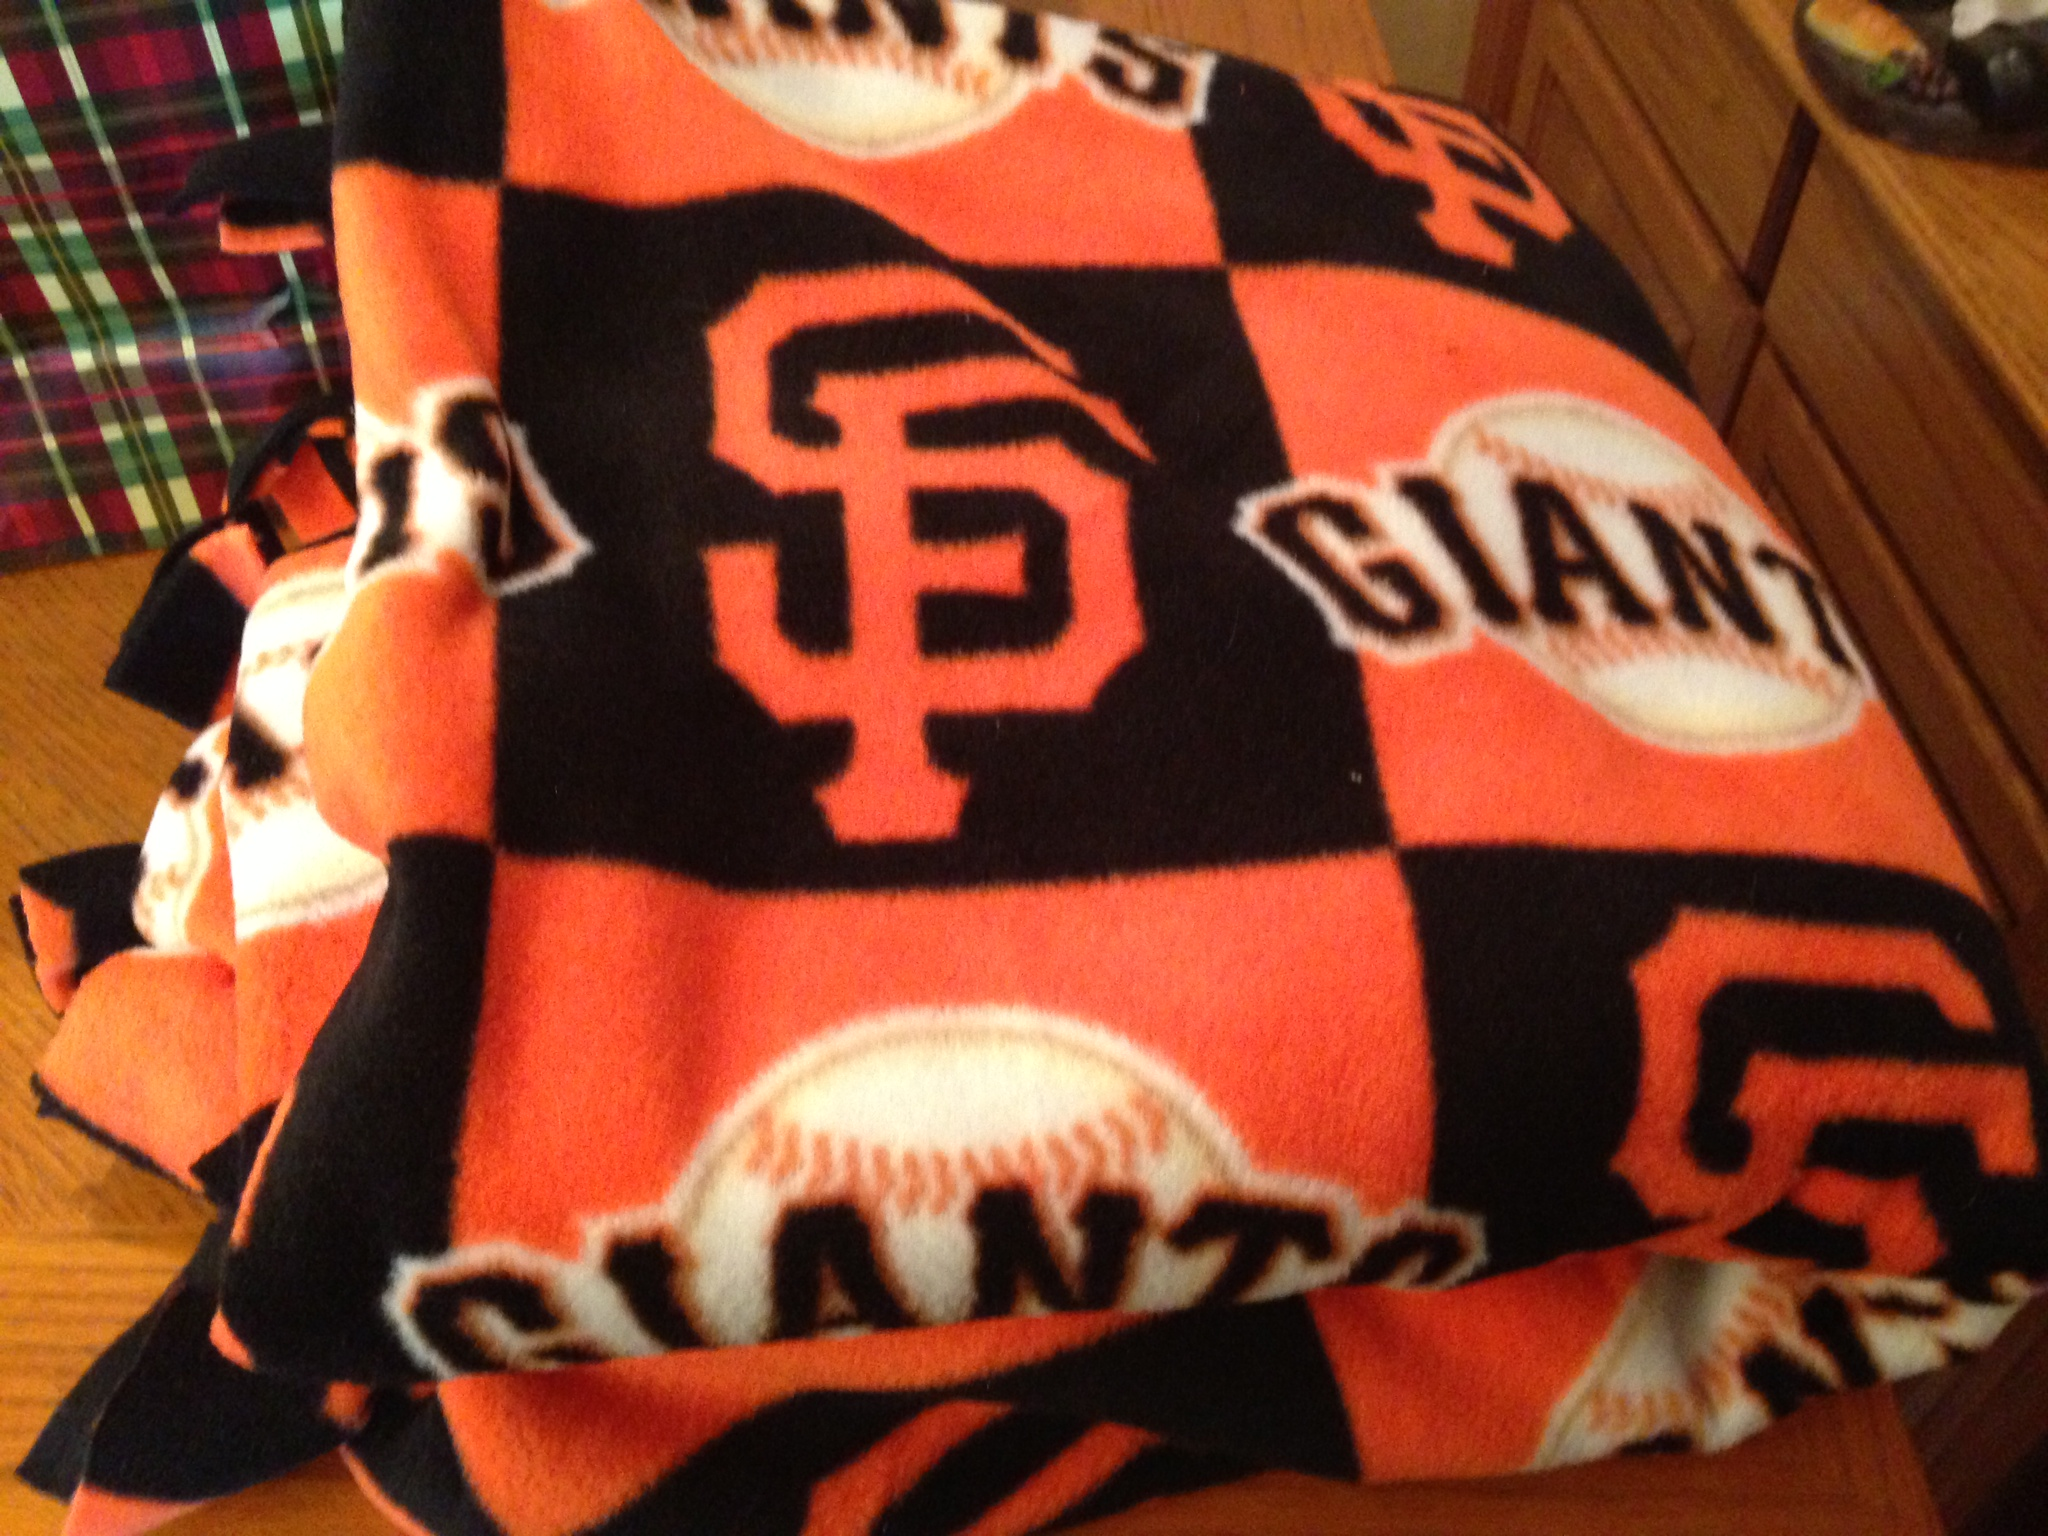 Thank you to Annyssa and Myrna Morales for the SF Giants Blanket Donation!